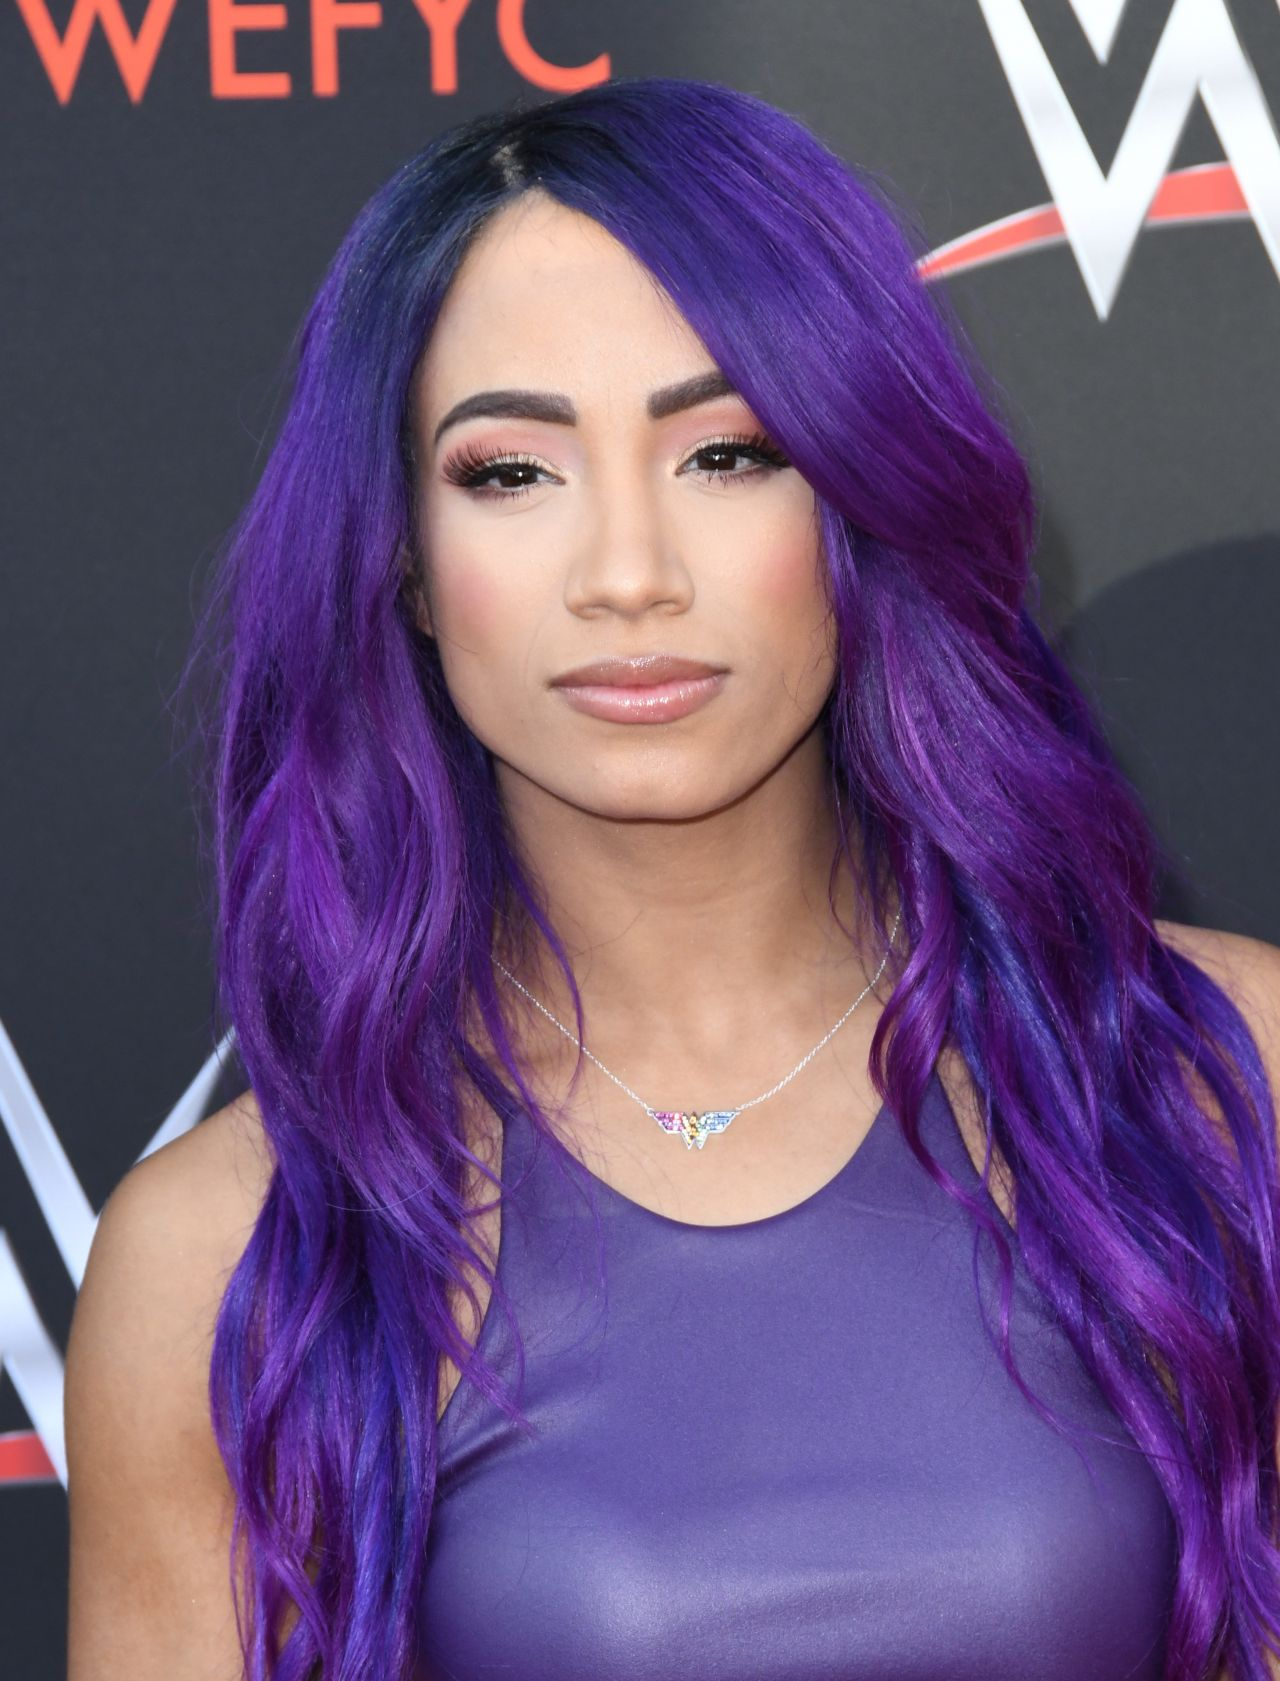 sasha-banks-wwe-s-first-ever-emmy-fyc-ev